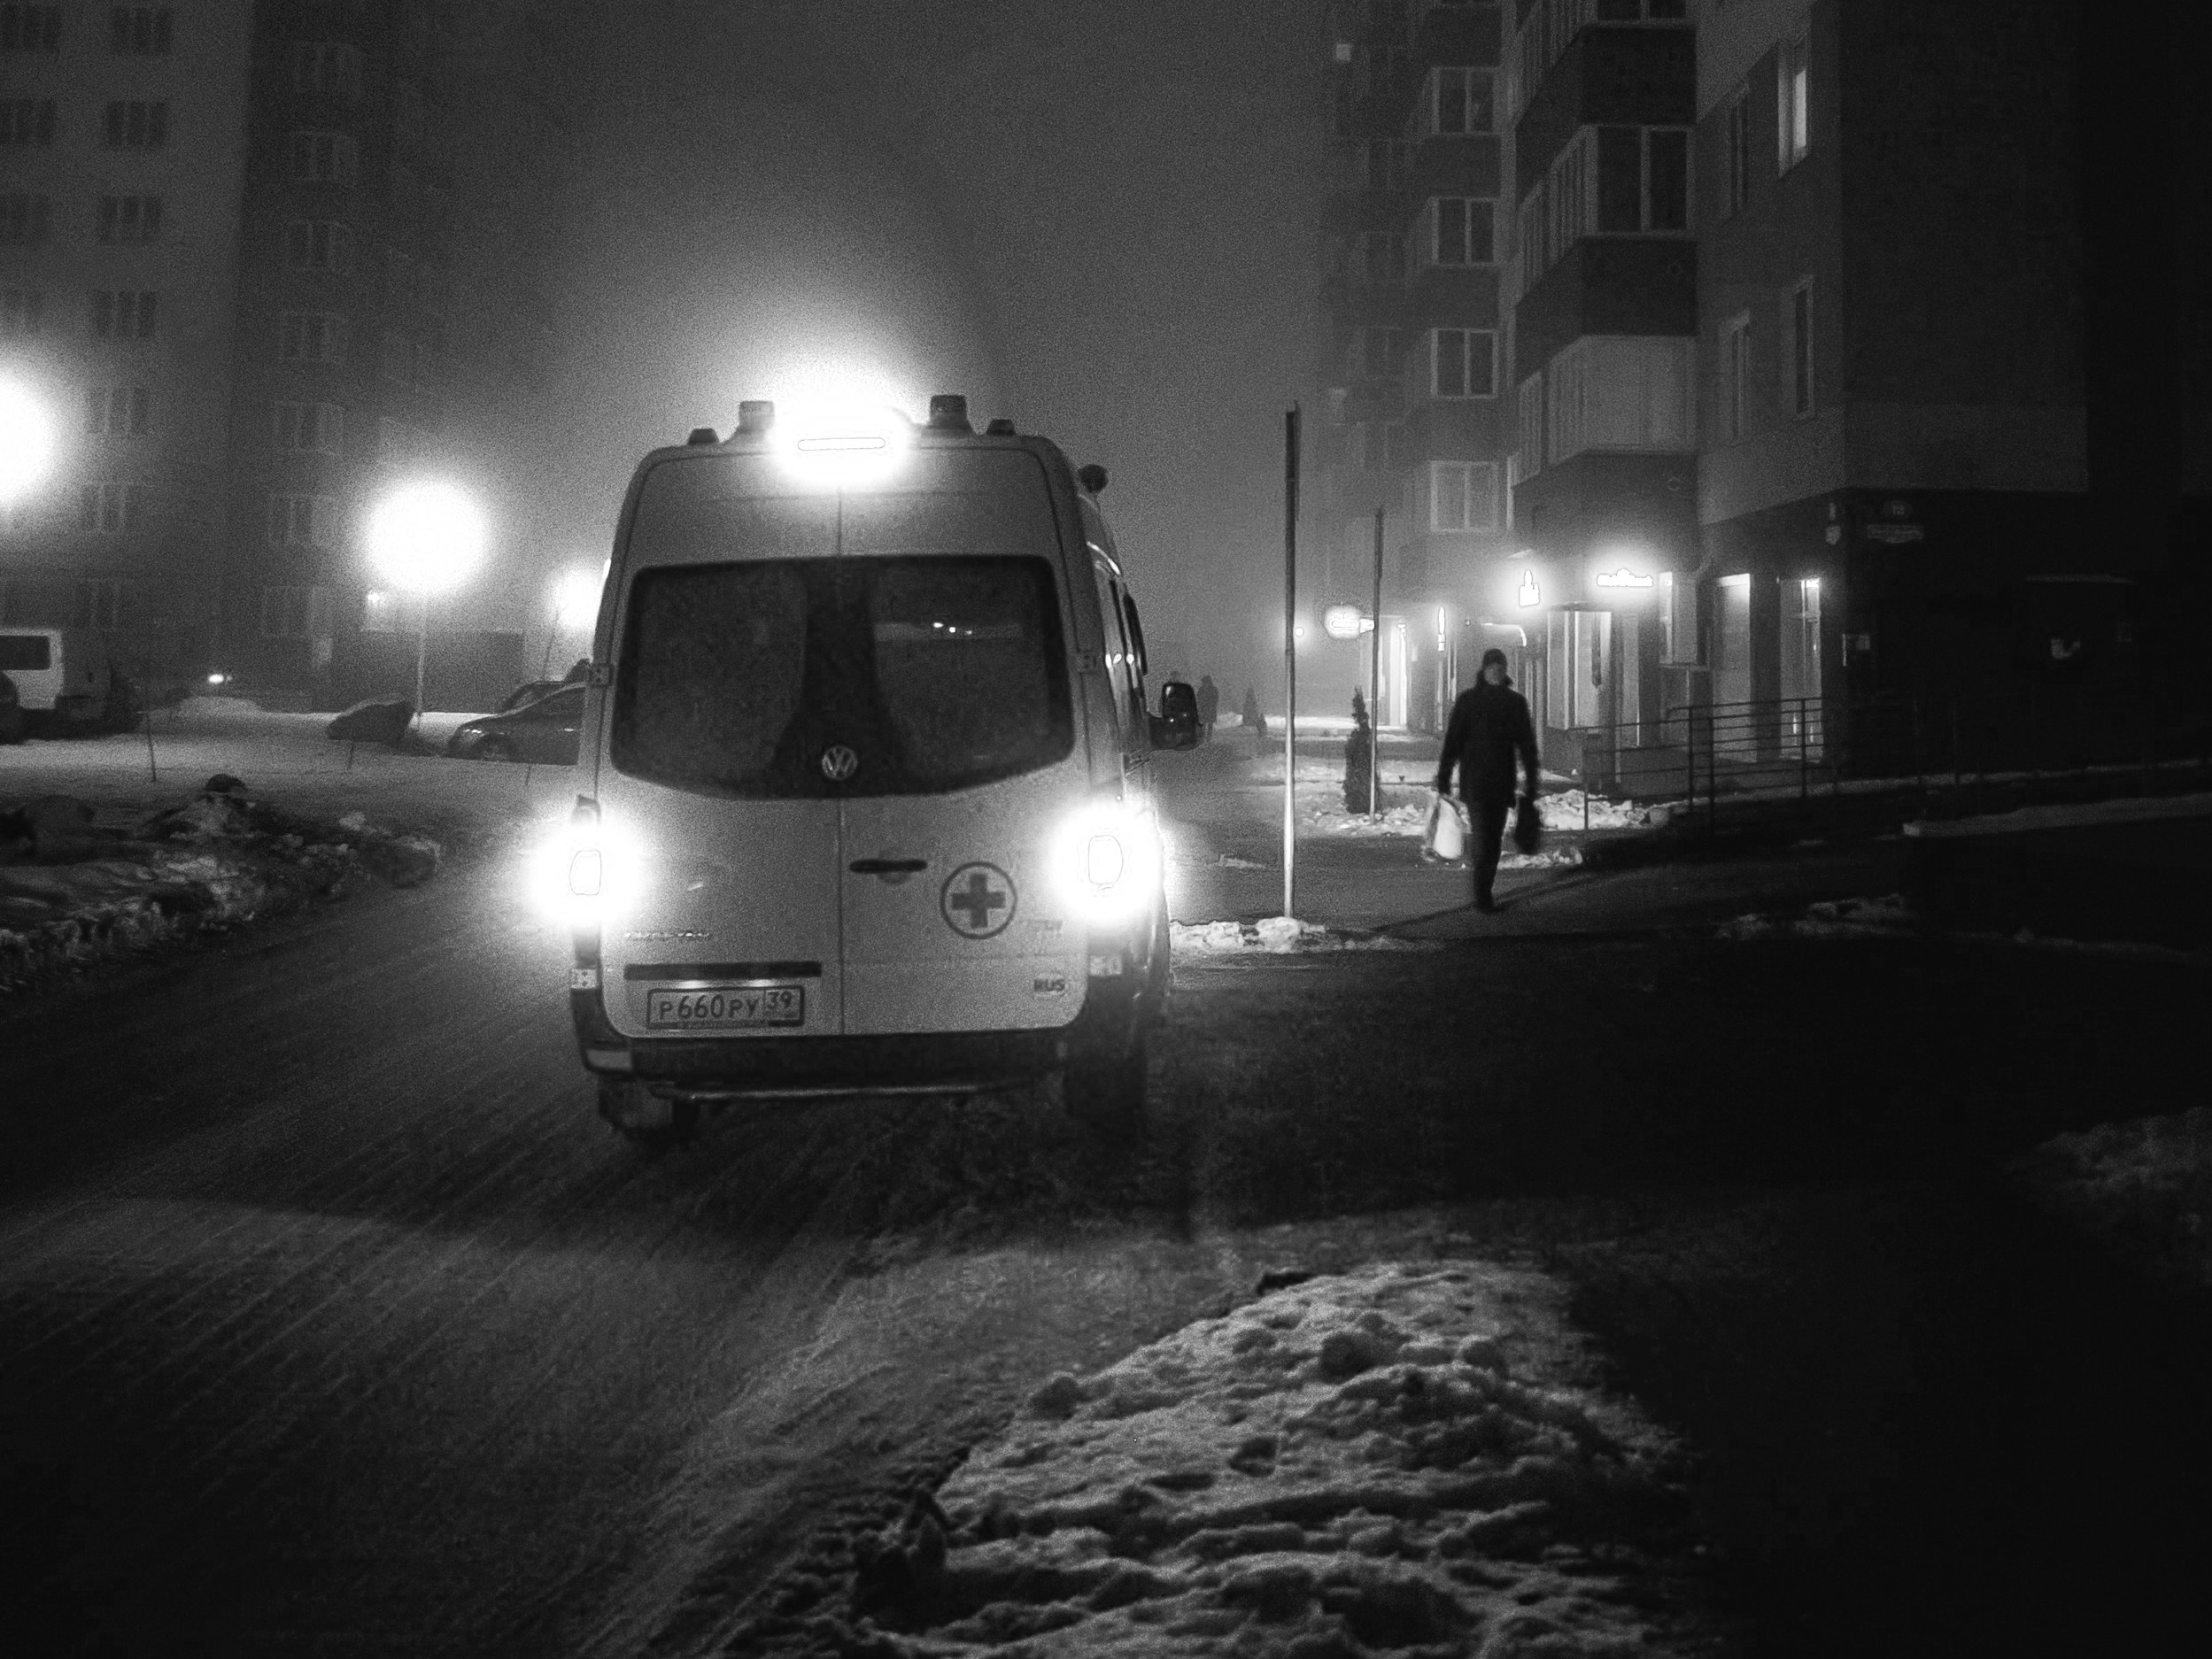 action-ambulance-atmospheric-evening-1853537.jpg